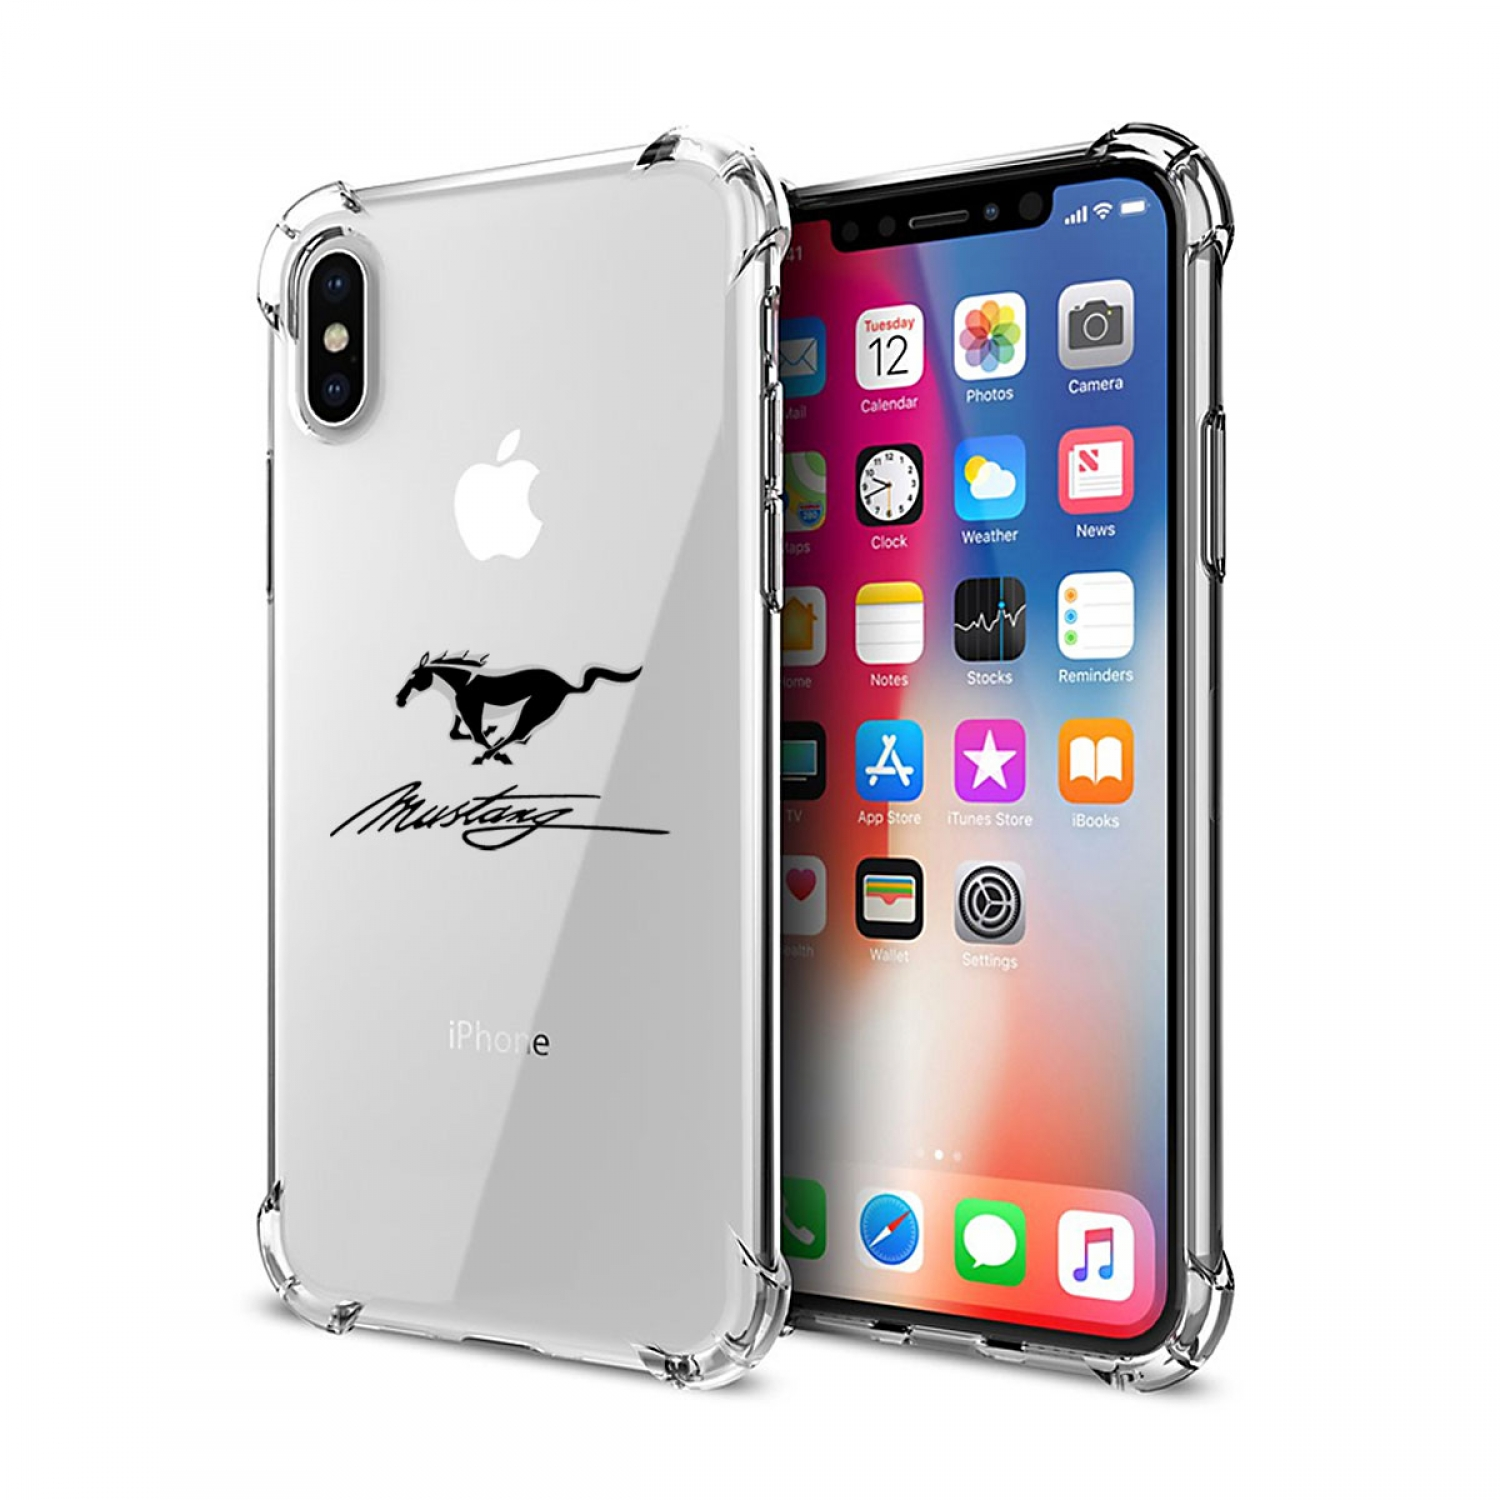 Ford Mustang Script iPhone X Clear TPU Shockproof Cell Phone Case